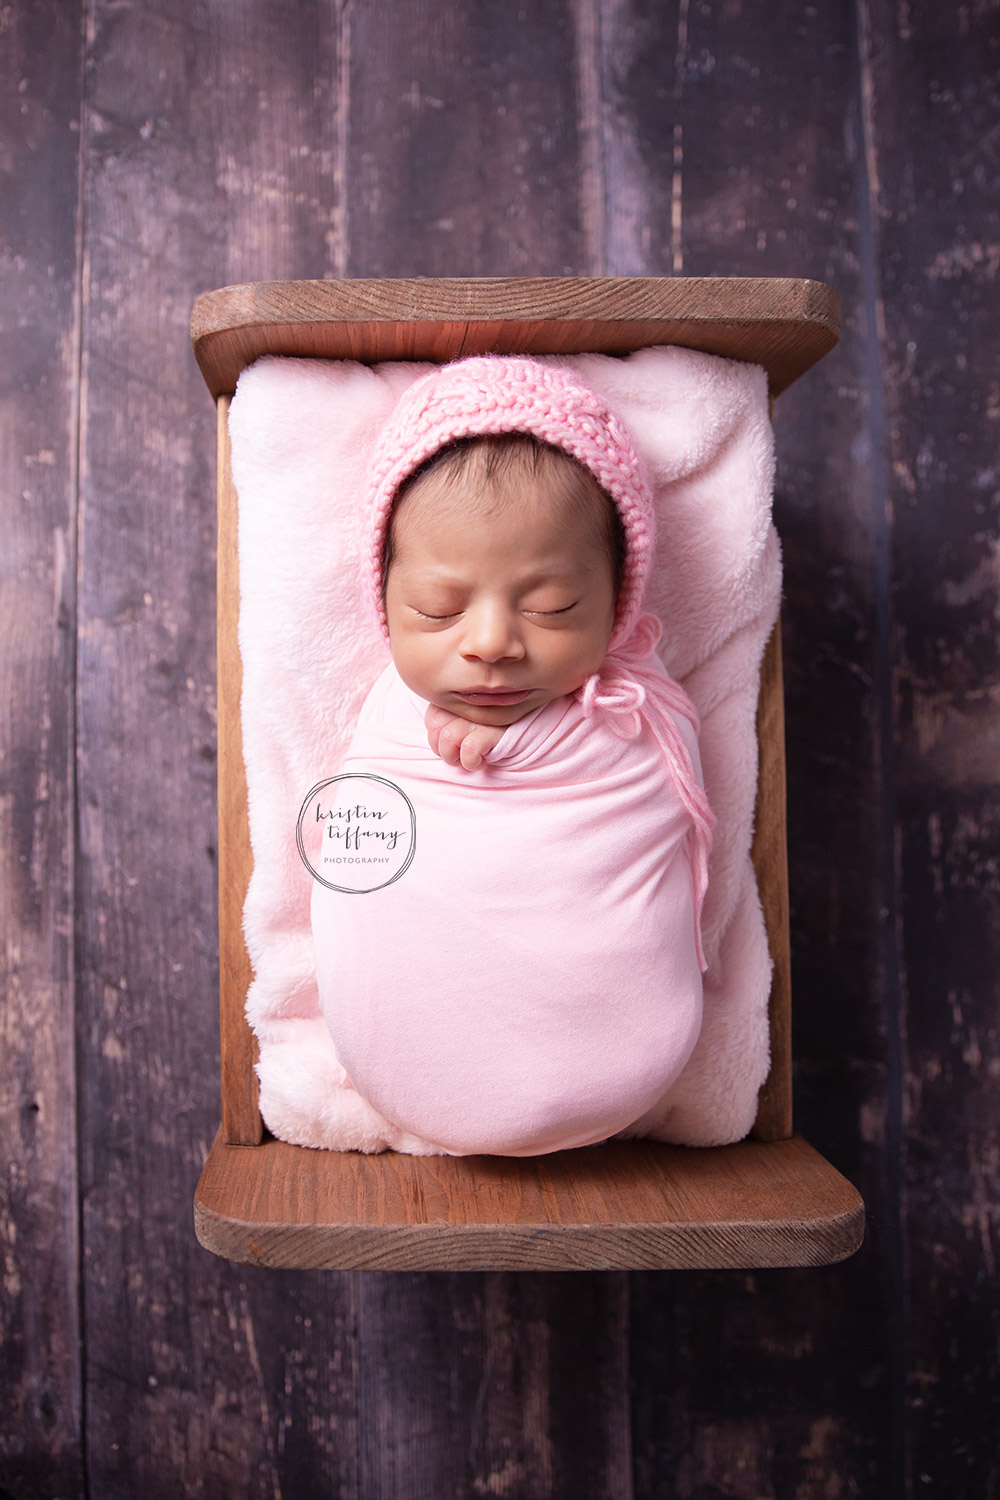 a photo of a newborn sleeping in a wooden bed